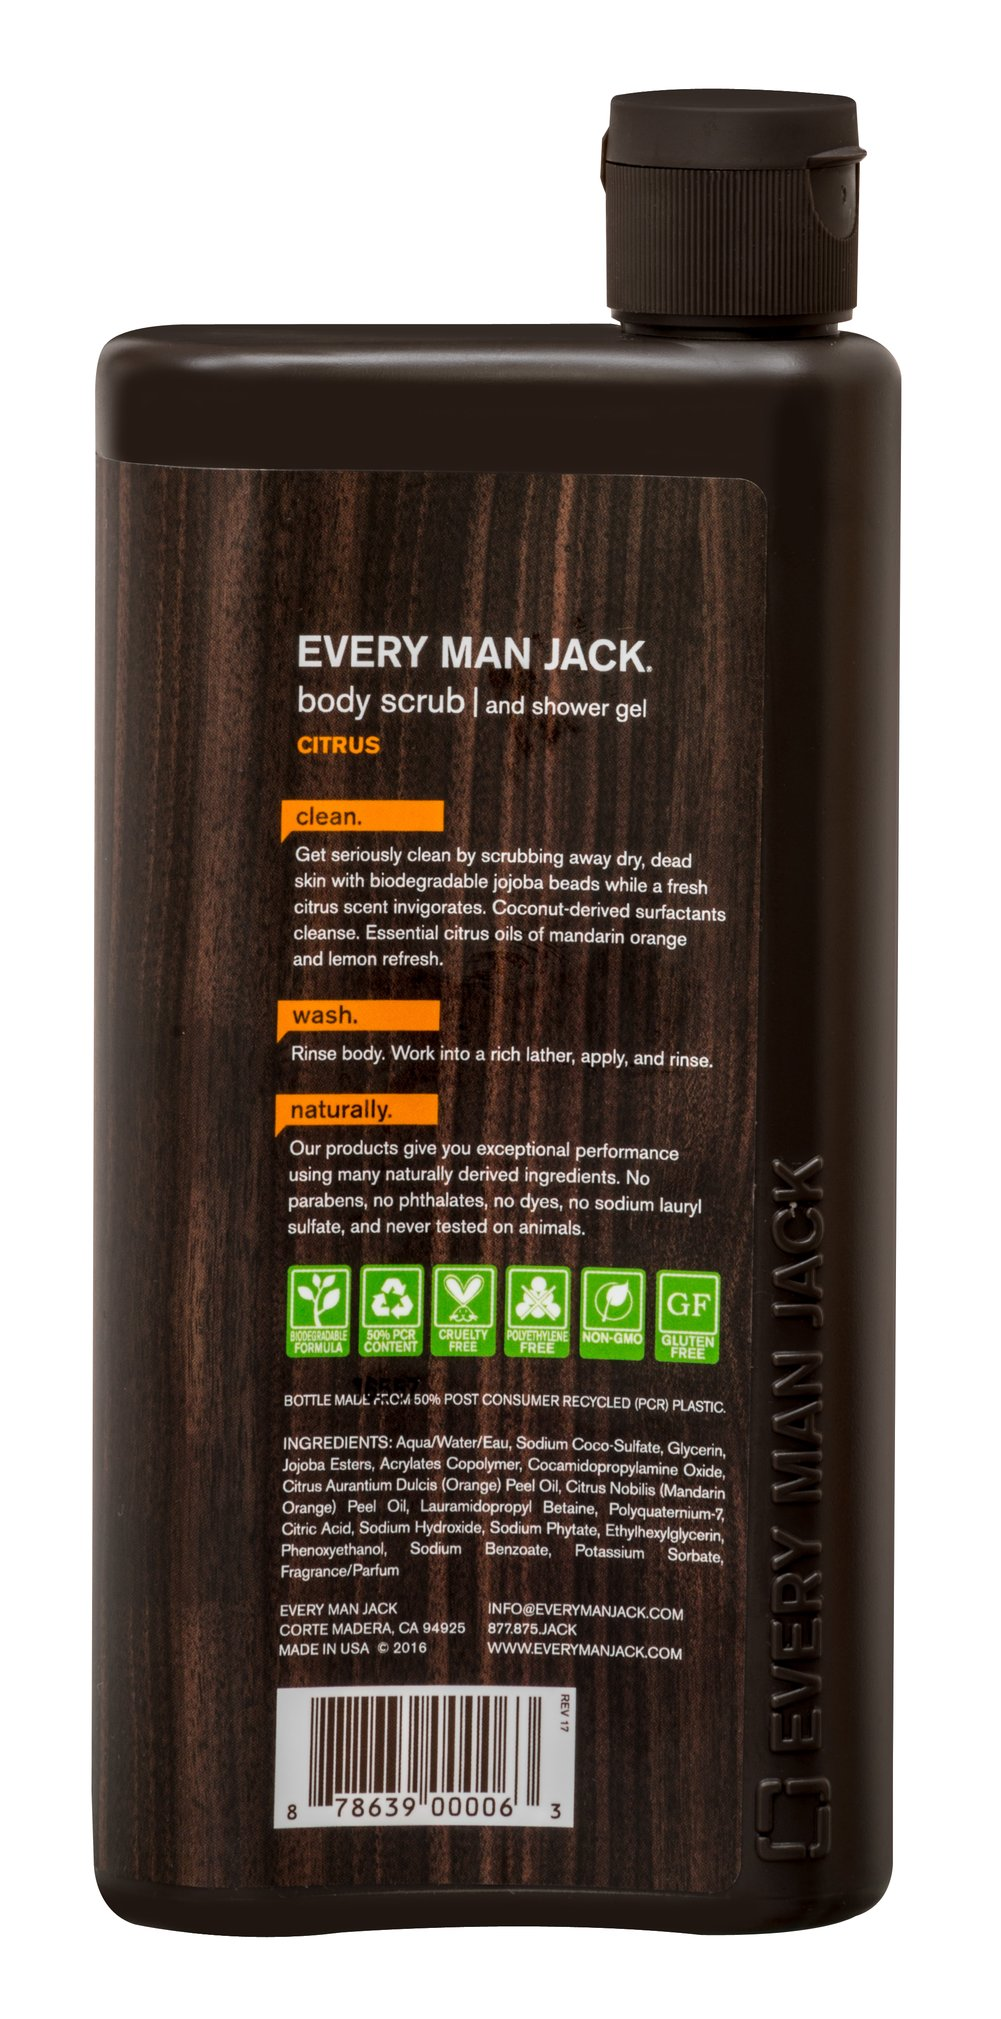 Every Man Jack® Citrus Scrub Body Wash & Shower Gel Thumbnail Alternate Bottle View